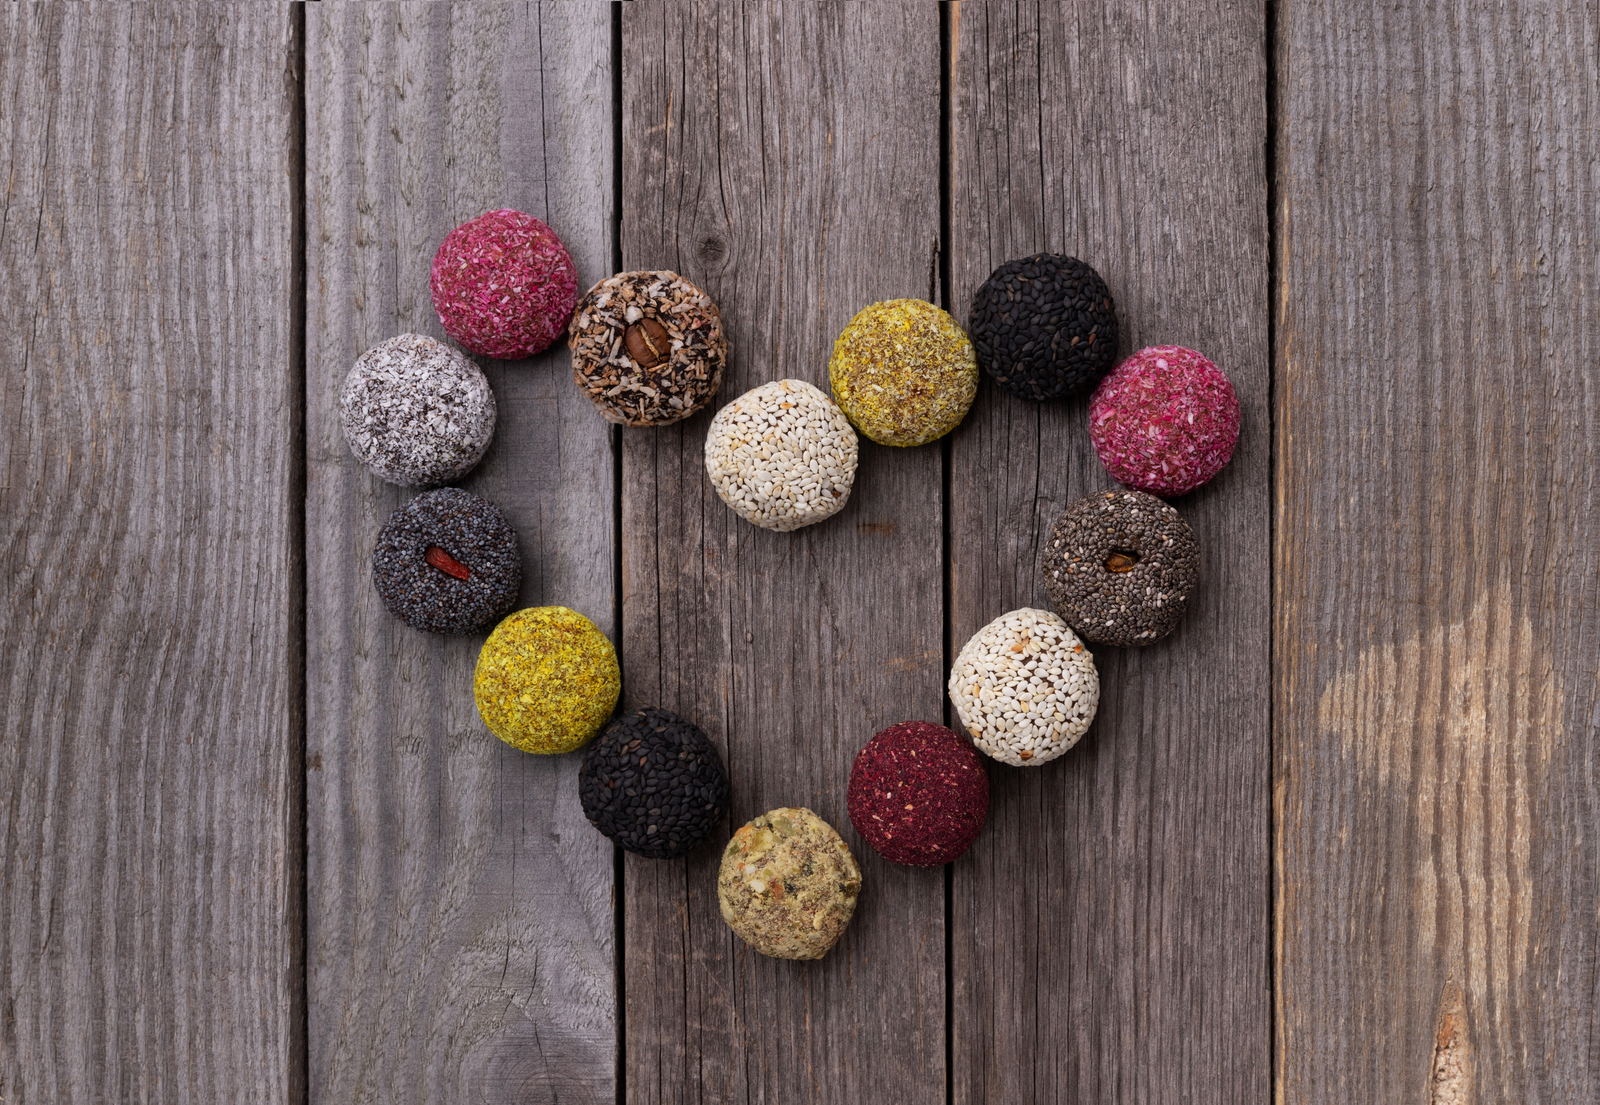 2-raw-energy-bites-balls-heart-shape-old-rustic-wooden-background.jpg